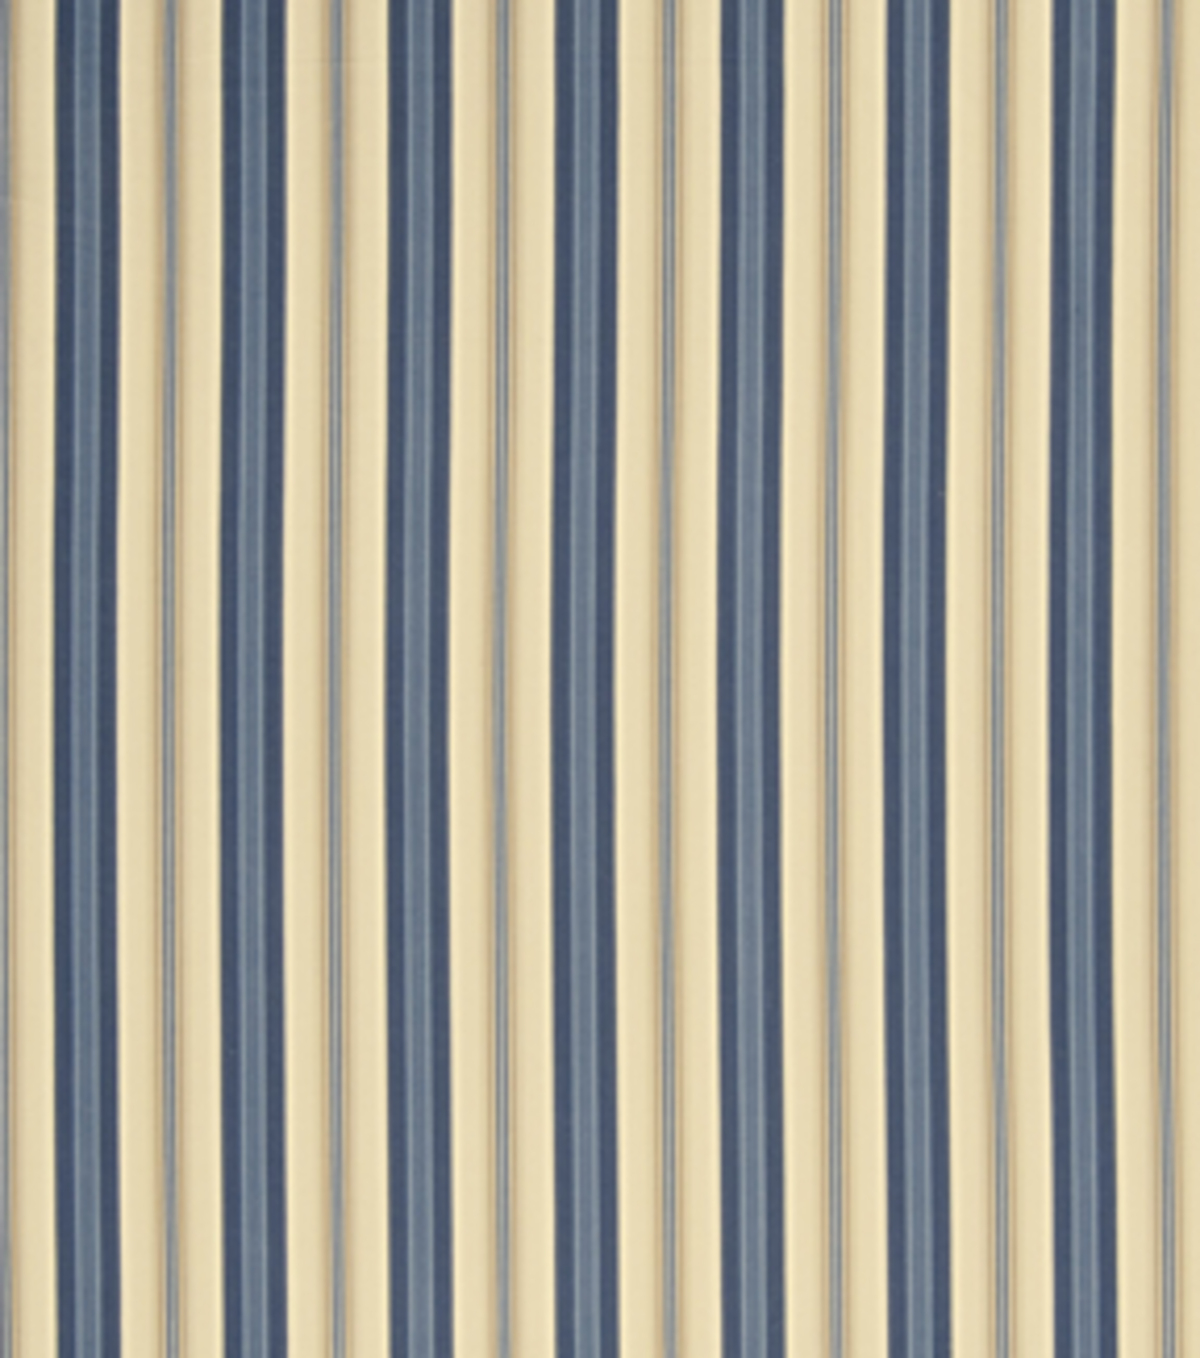 Home Decor 8\u0022x8\u0022 Fabric Swatch-French General Gidget Indigo